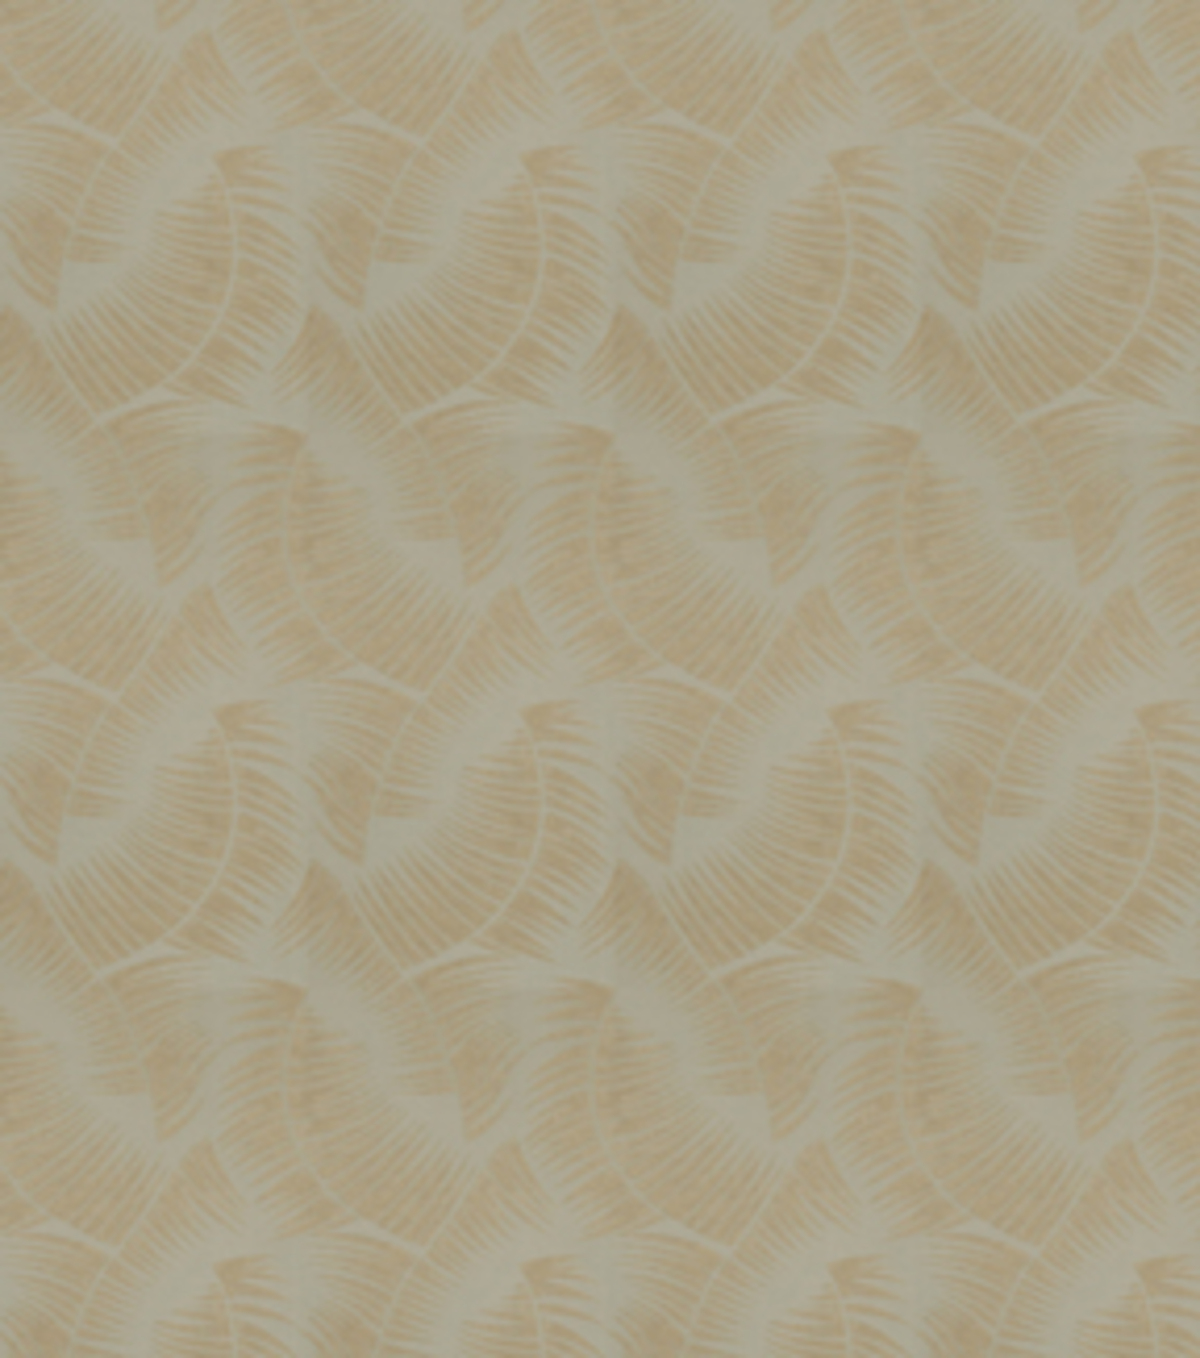 Home Decor 8\u0022x8\u0022 Fabric Swatch-Eaton Square Morocco Lagoon